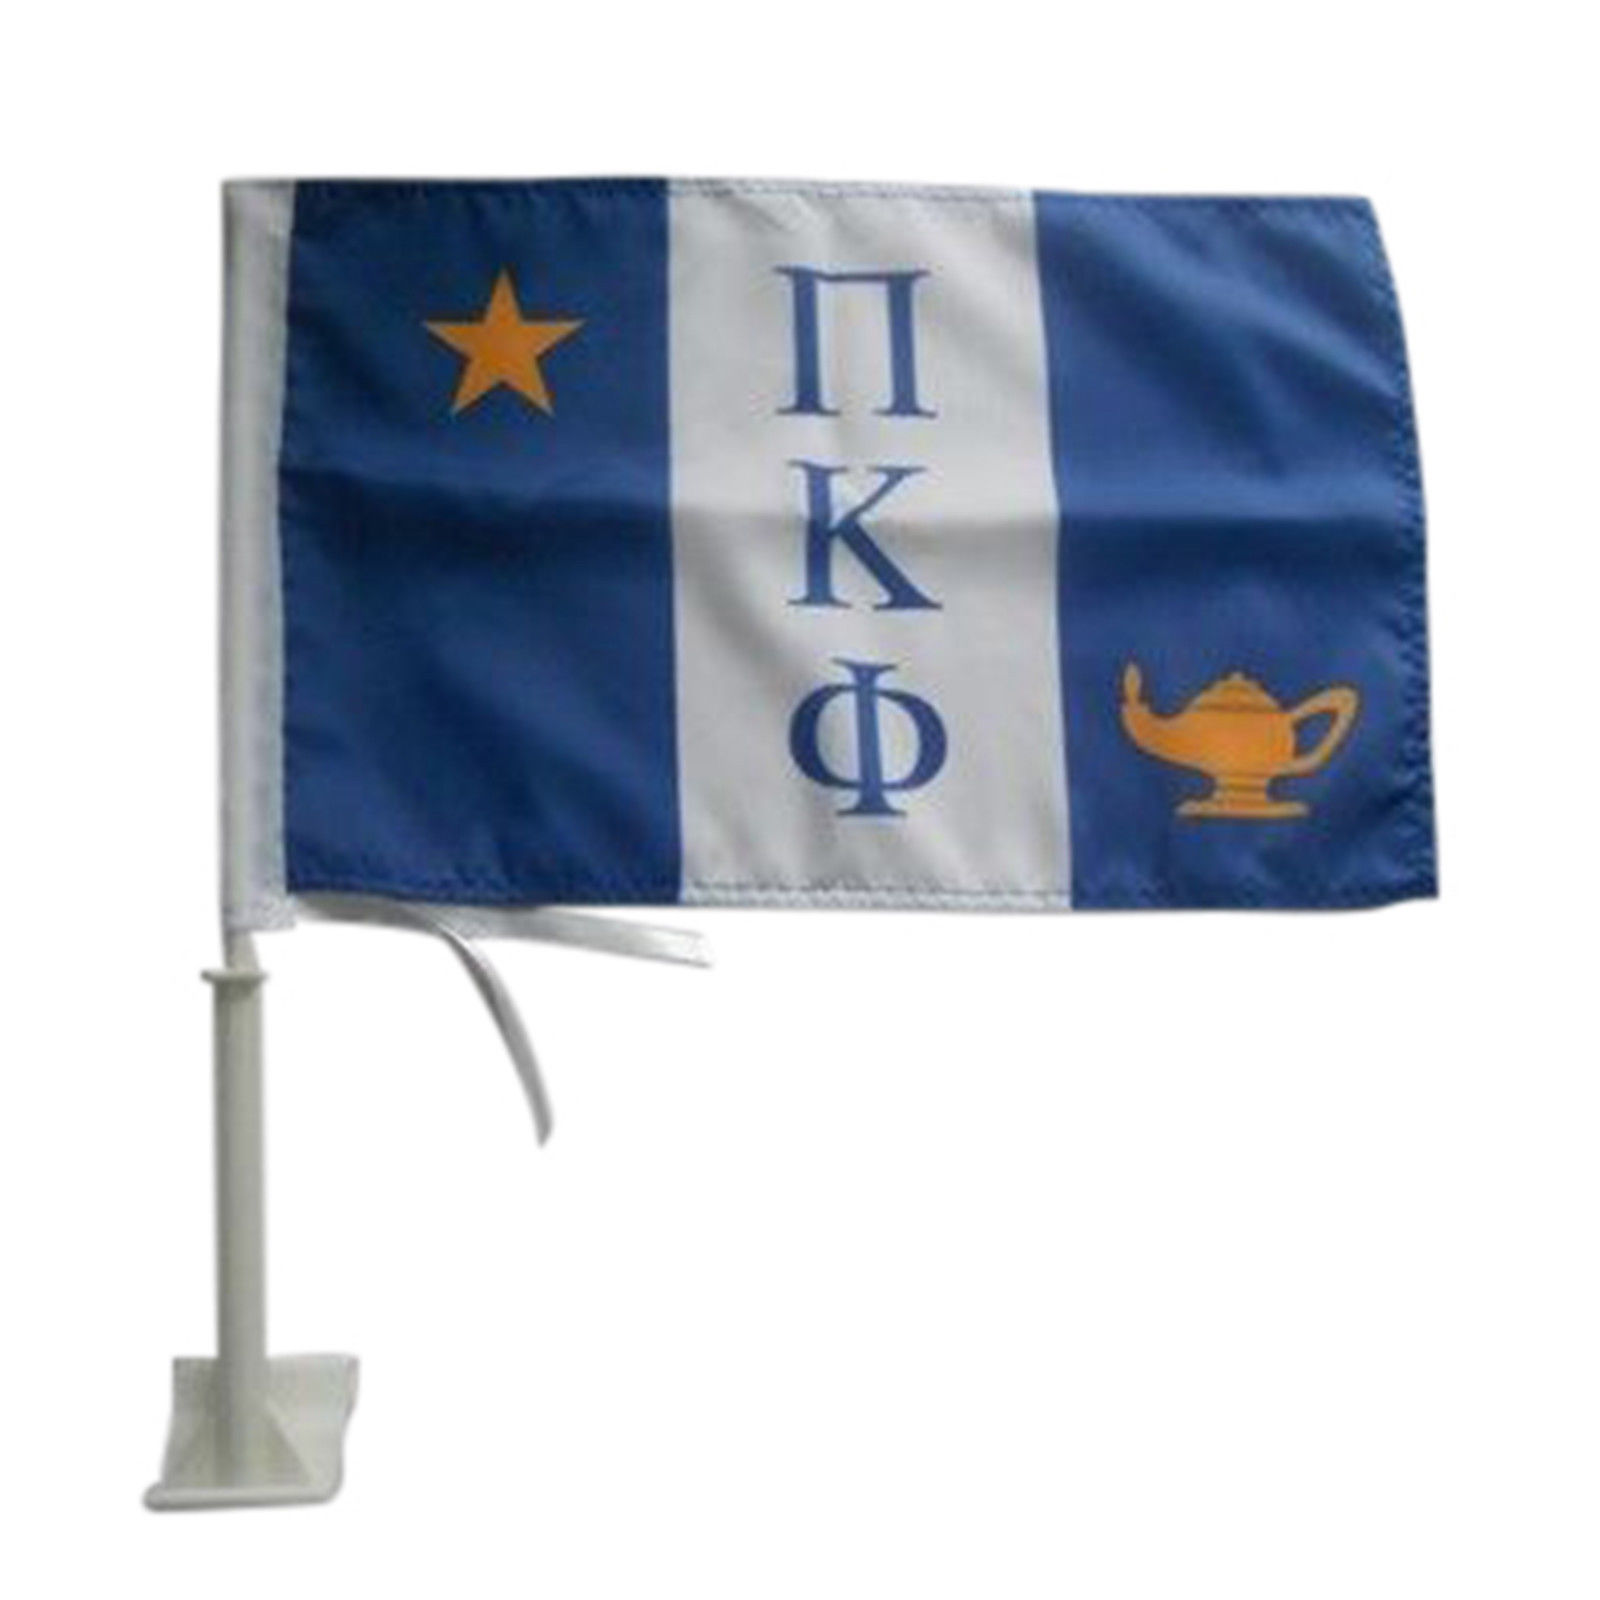 Design car flags - About This Item